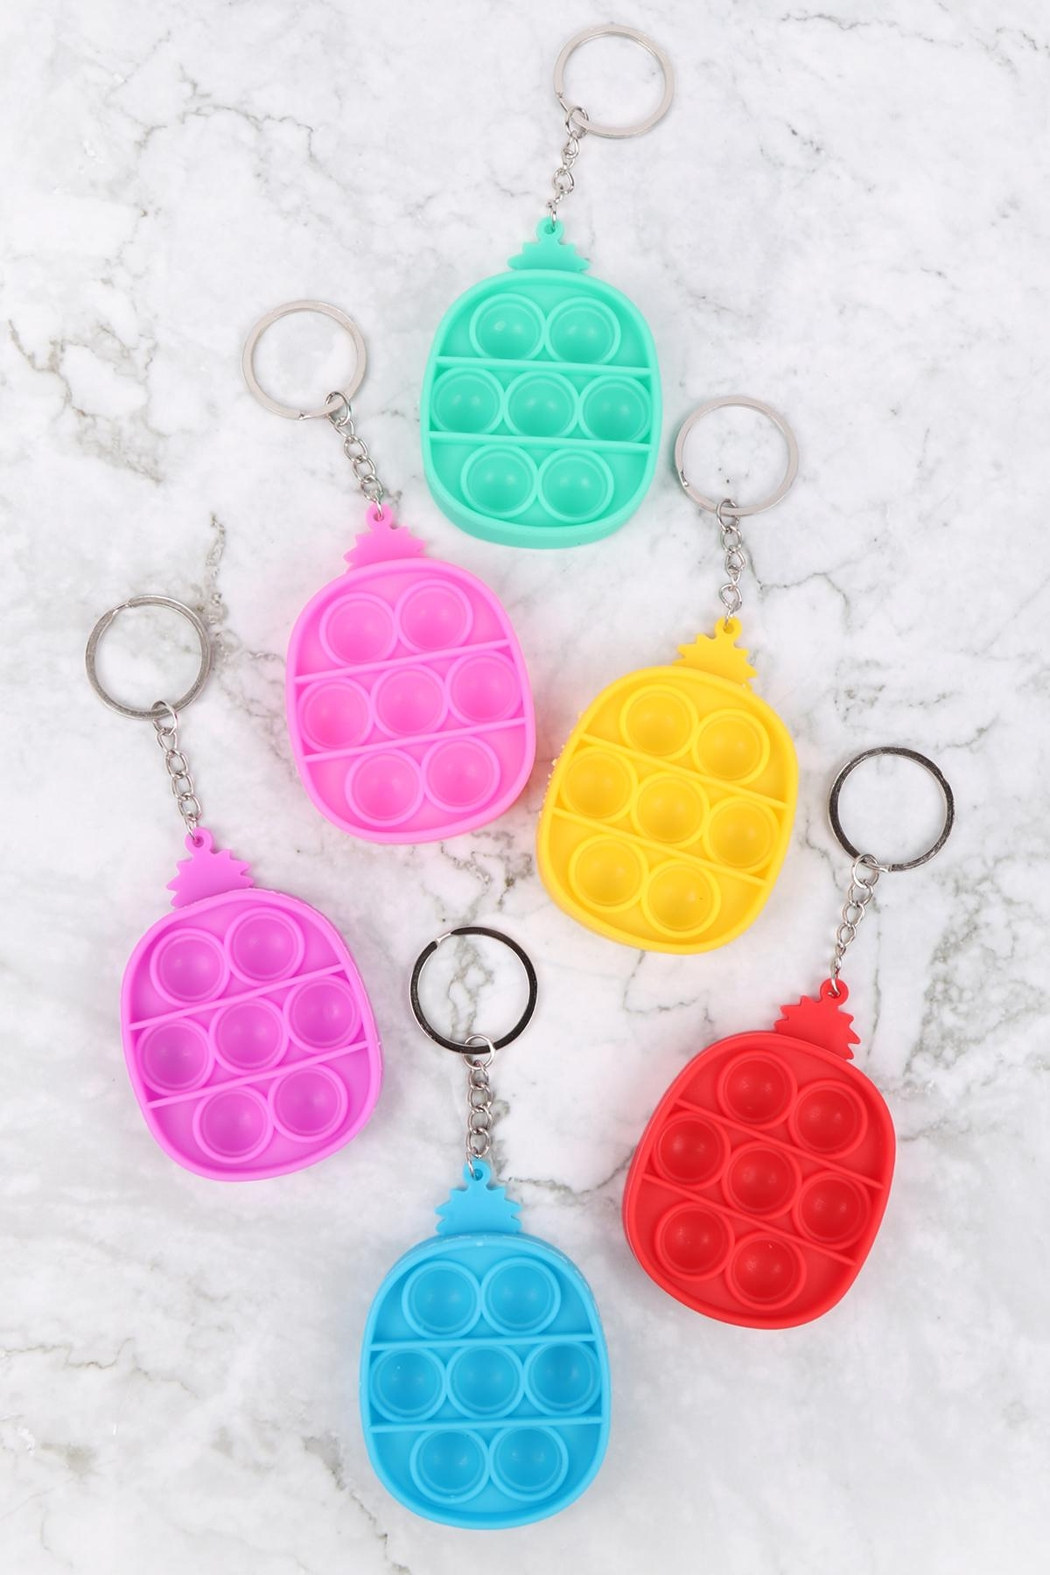 Riah Fashion Pop-Fidget-Sensory-And-Stress-Reliever-Pineapple-Multicolor-To-Keychain - Front Full Image